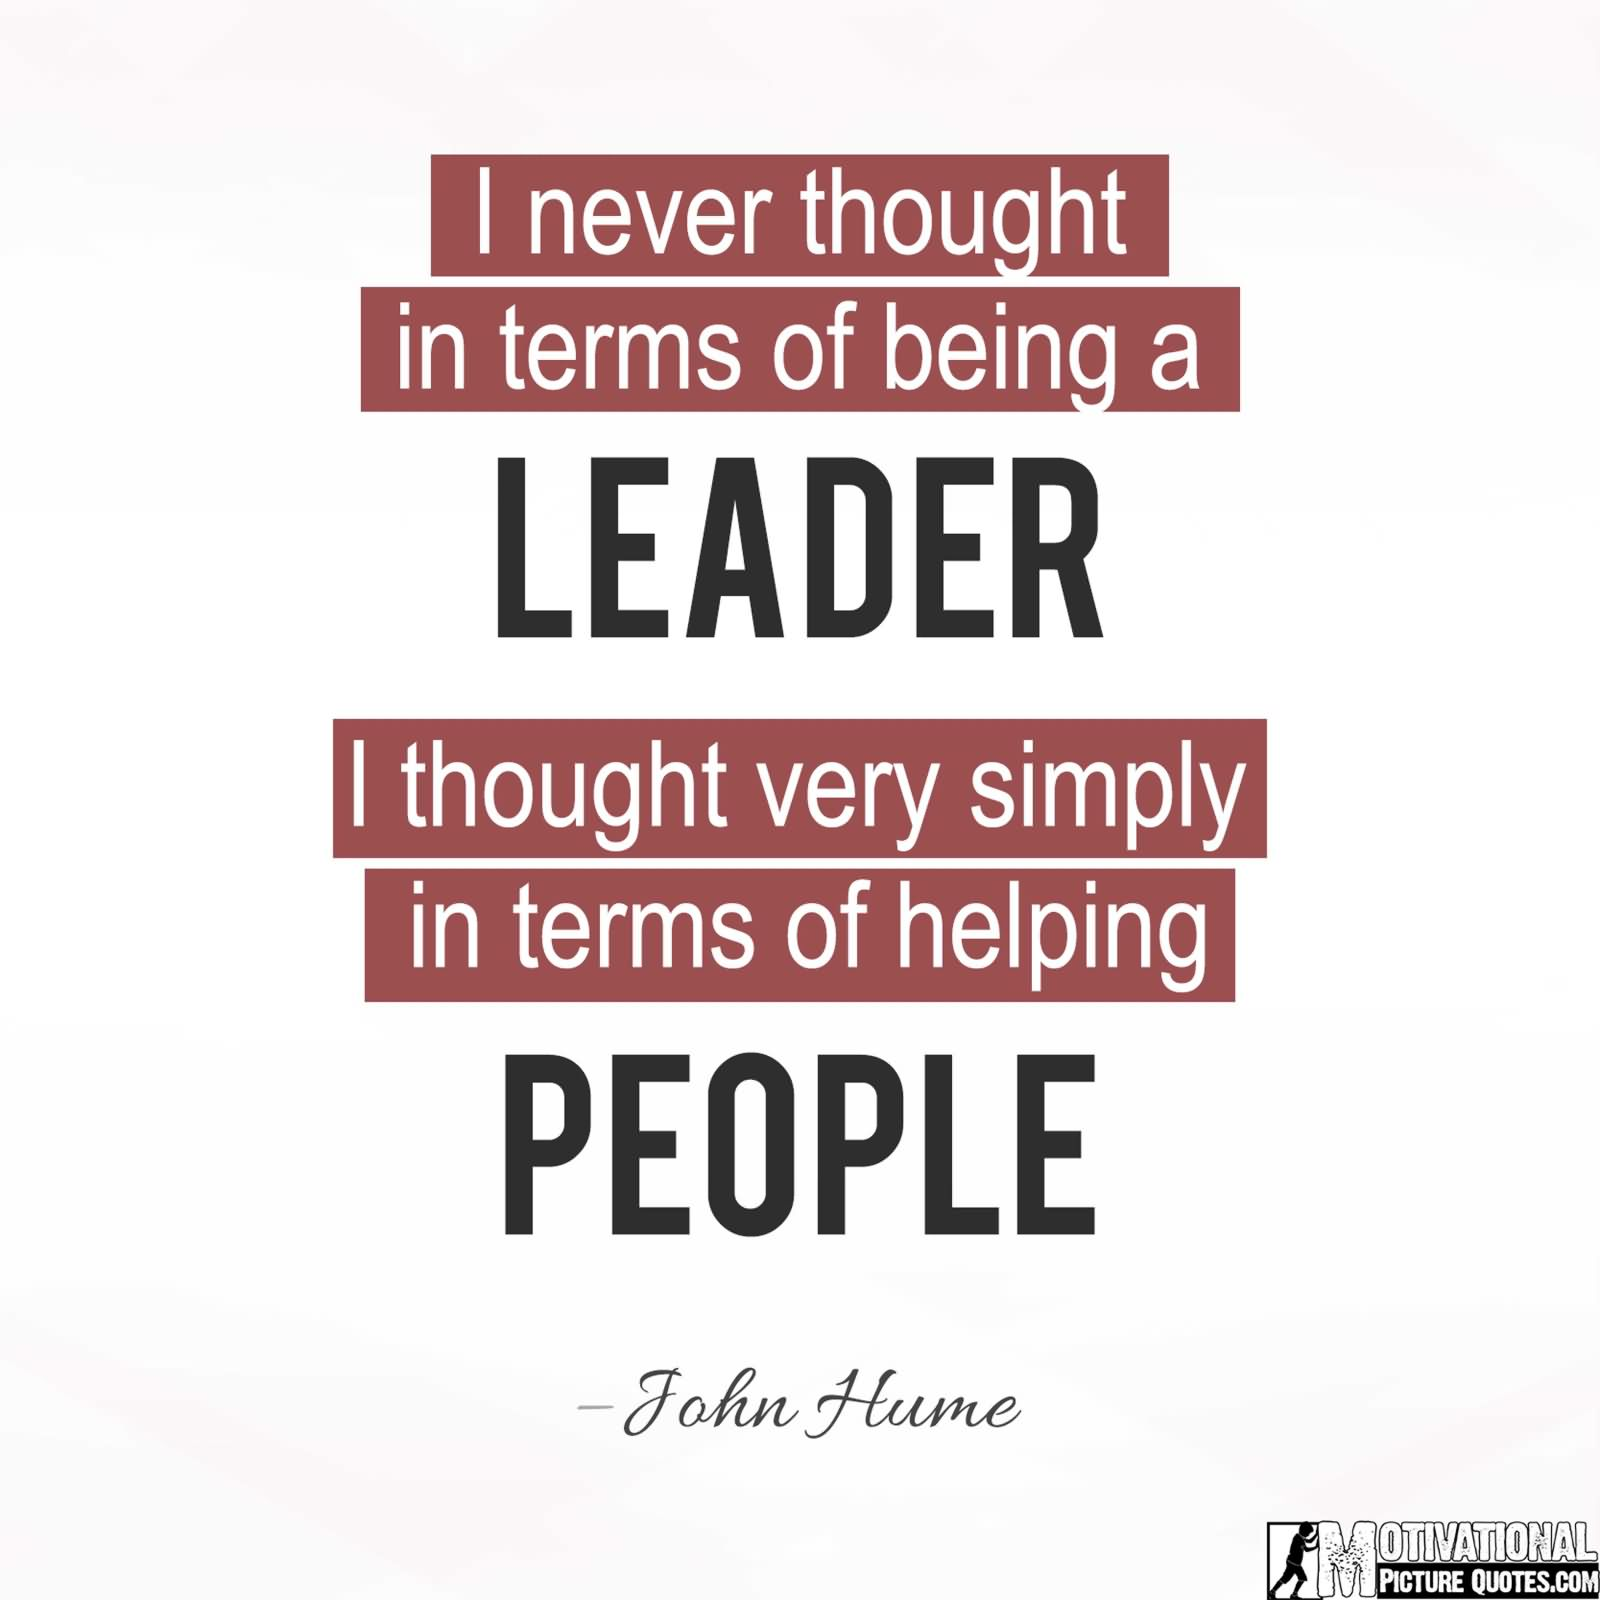 Thought Leader: 75+ Leadership Quotes, Sayings About Leaders